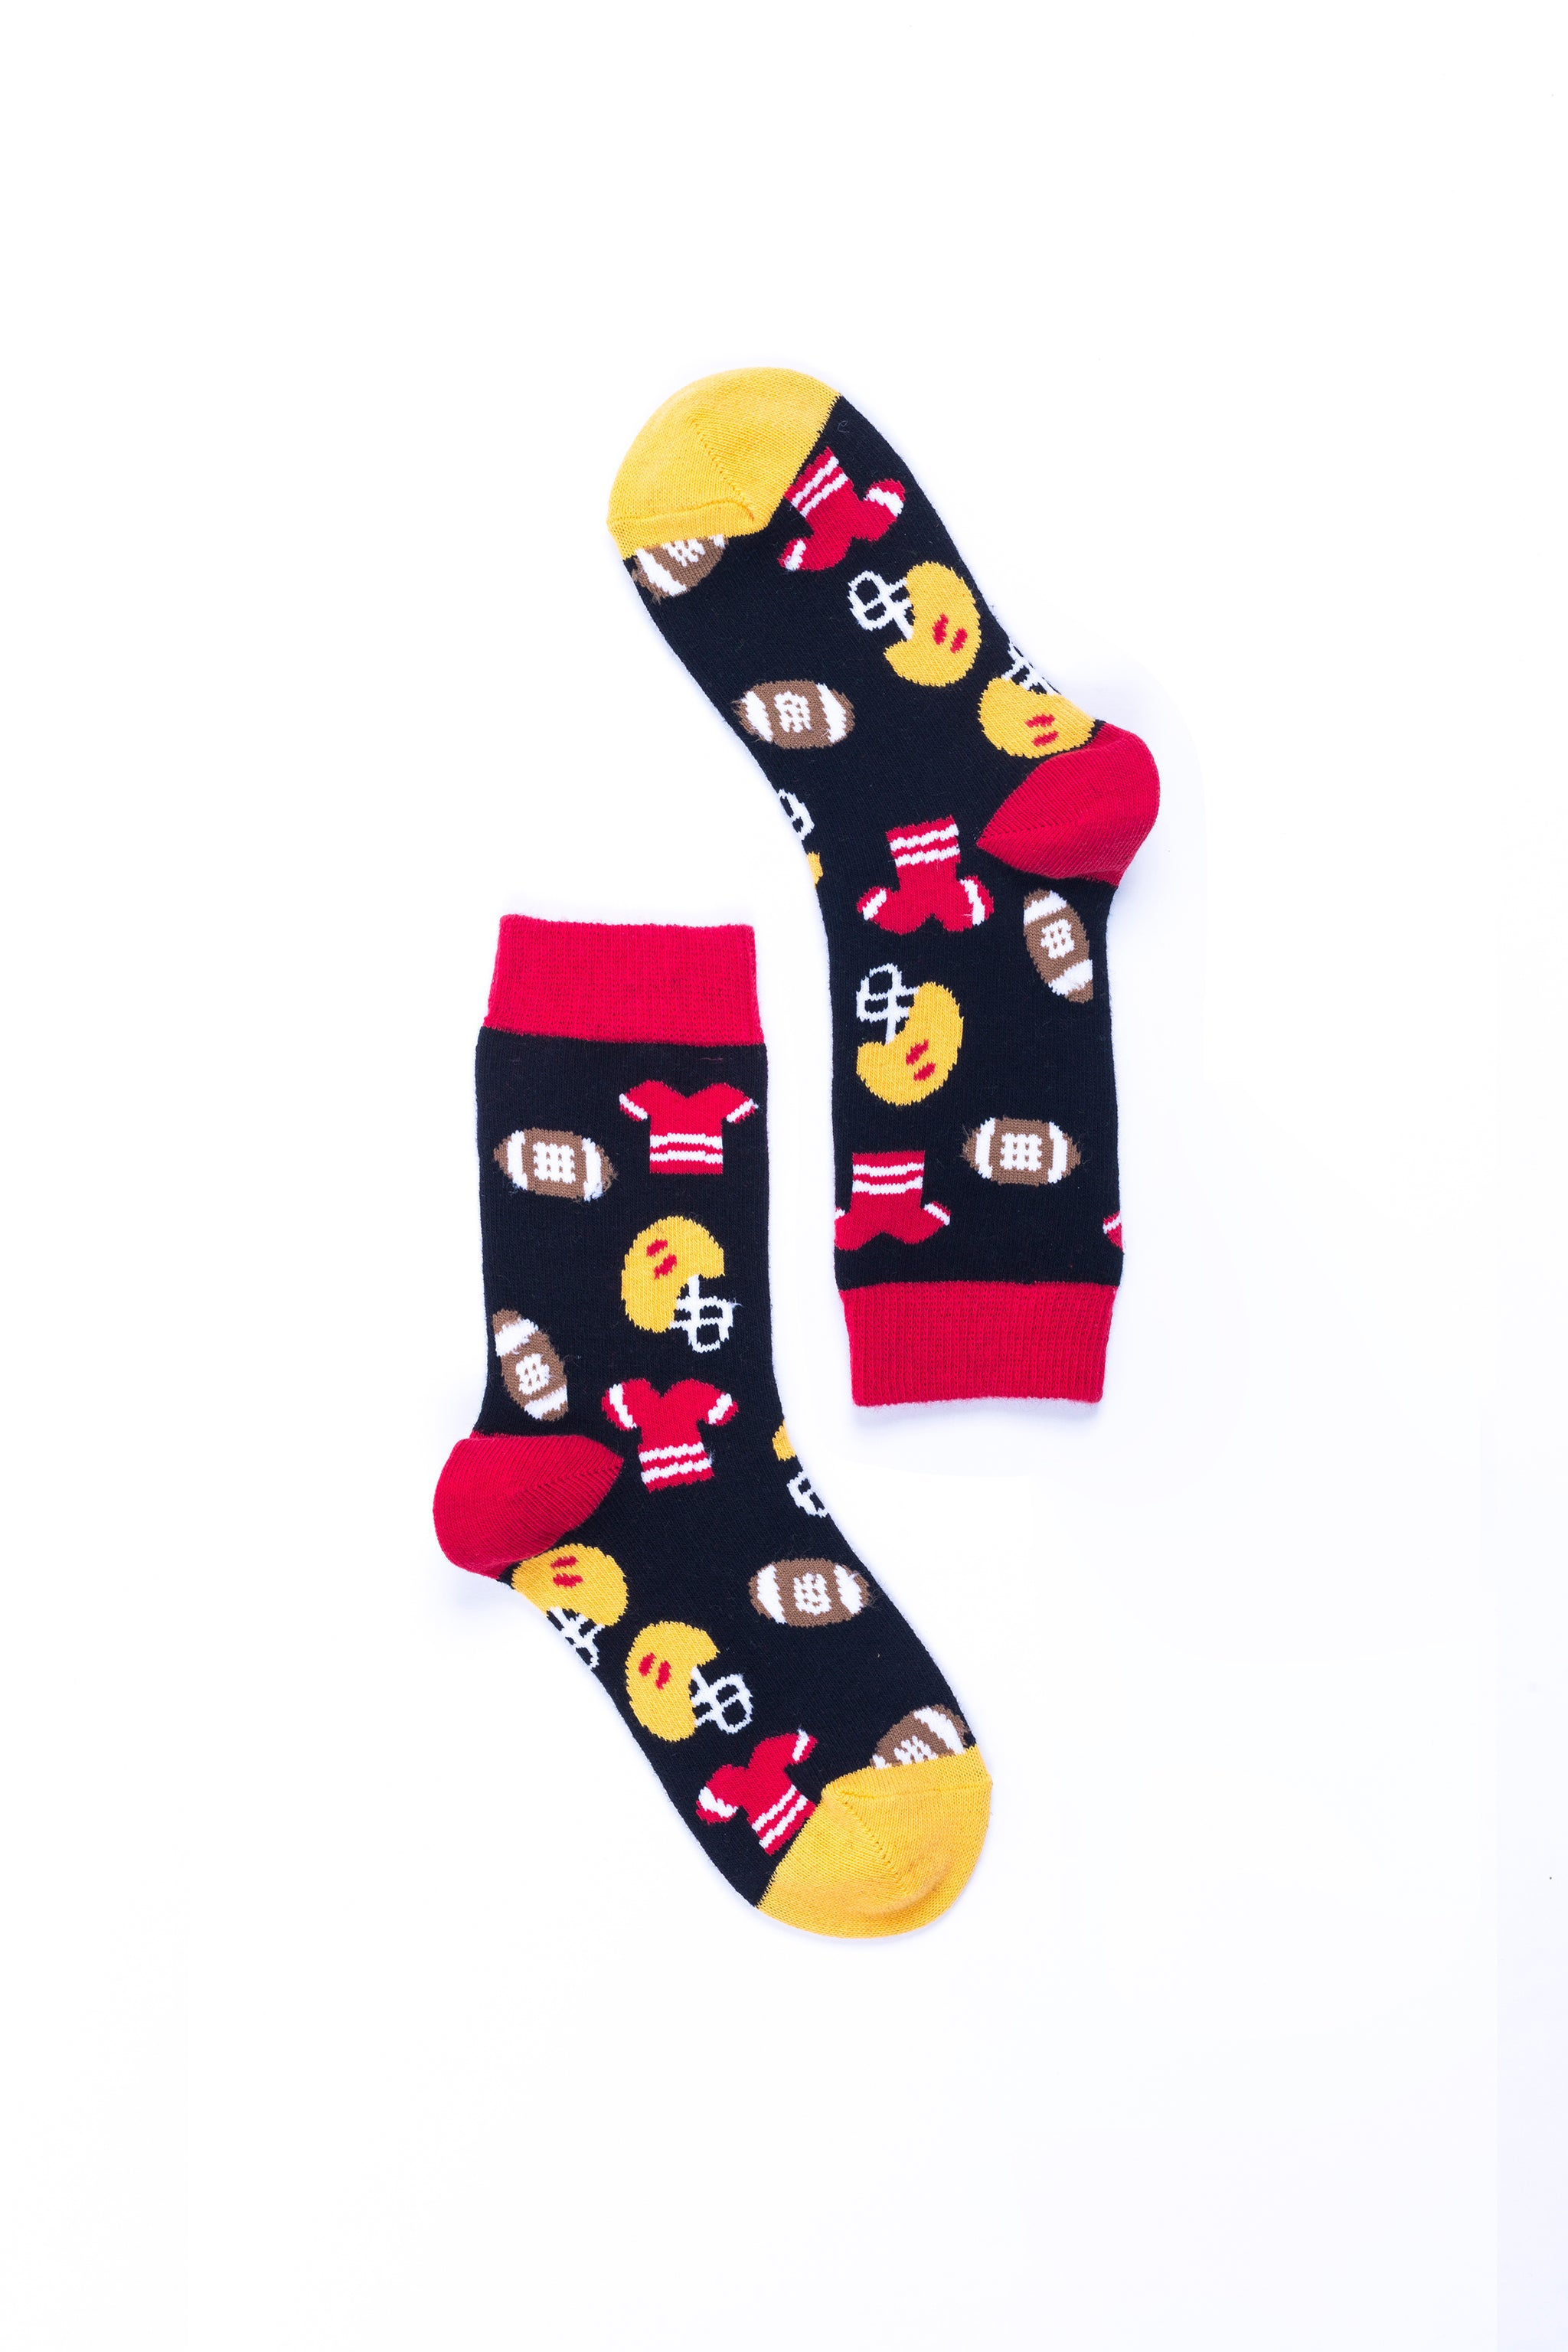 Women's Football Socks